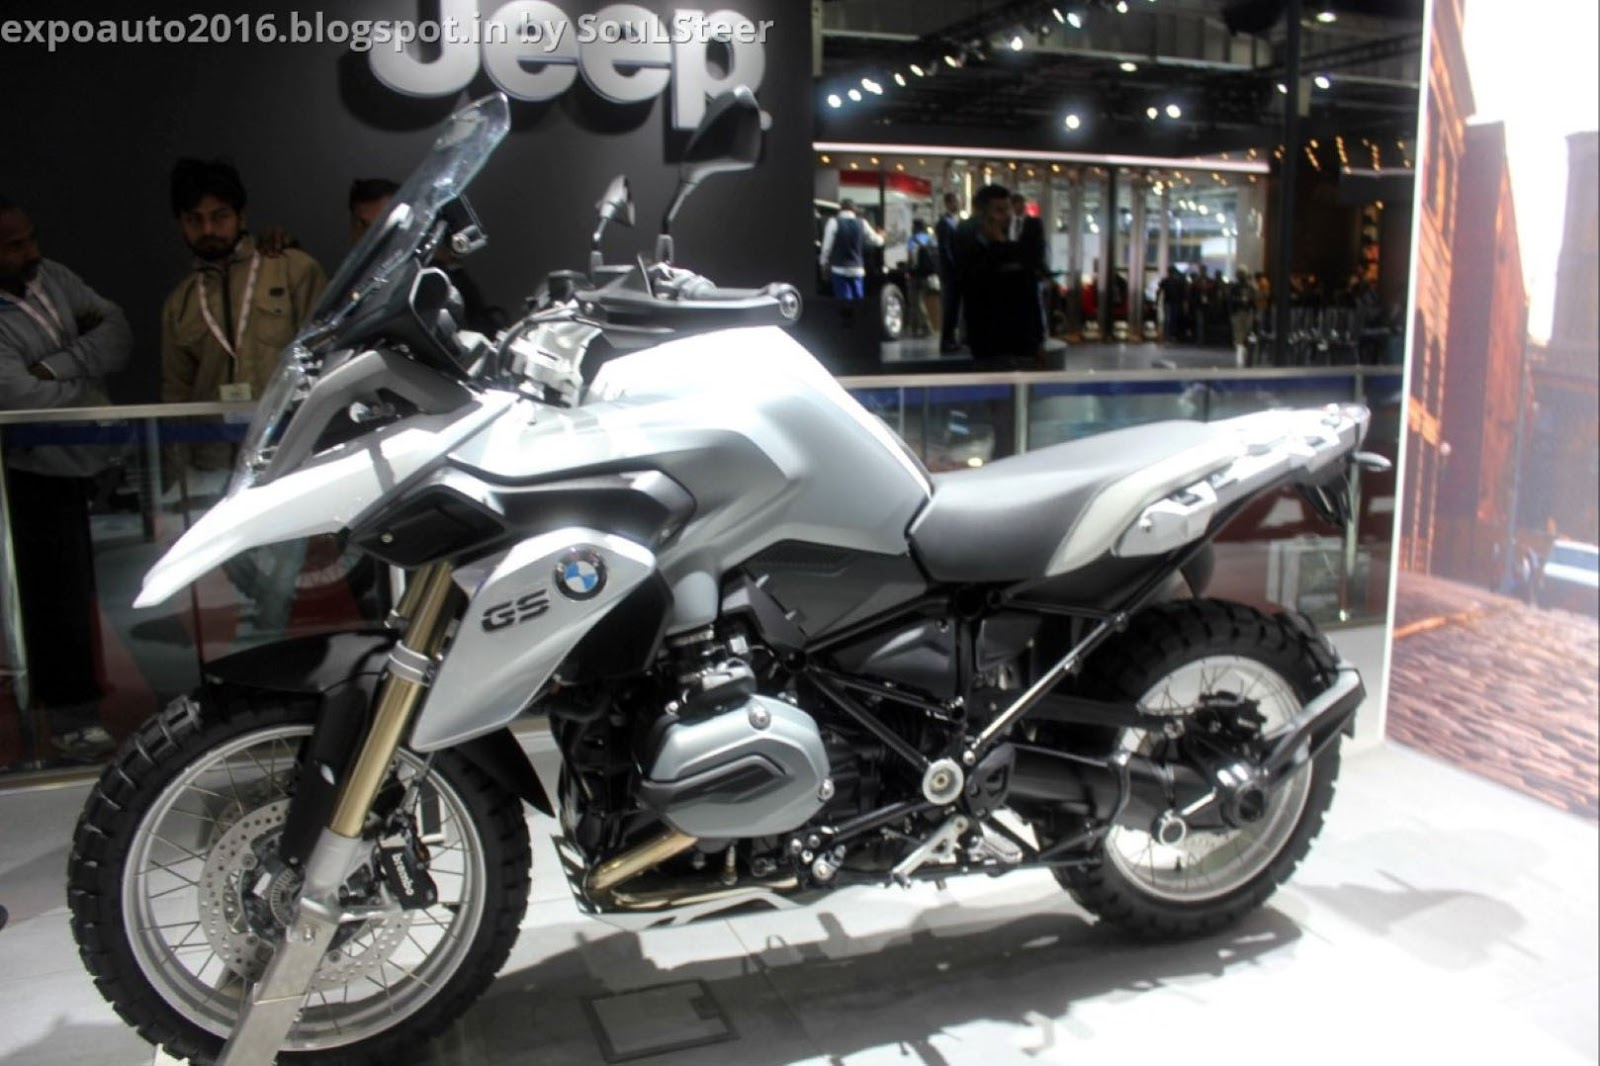 auto expo 2016soulsteer: bmw motorrad displays s 1000 xr and r